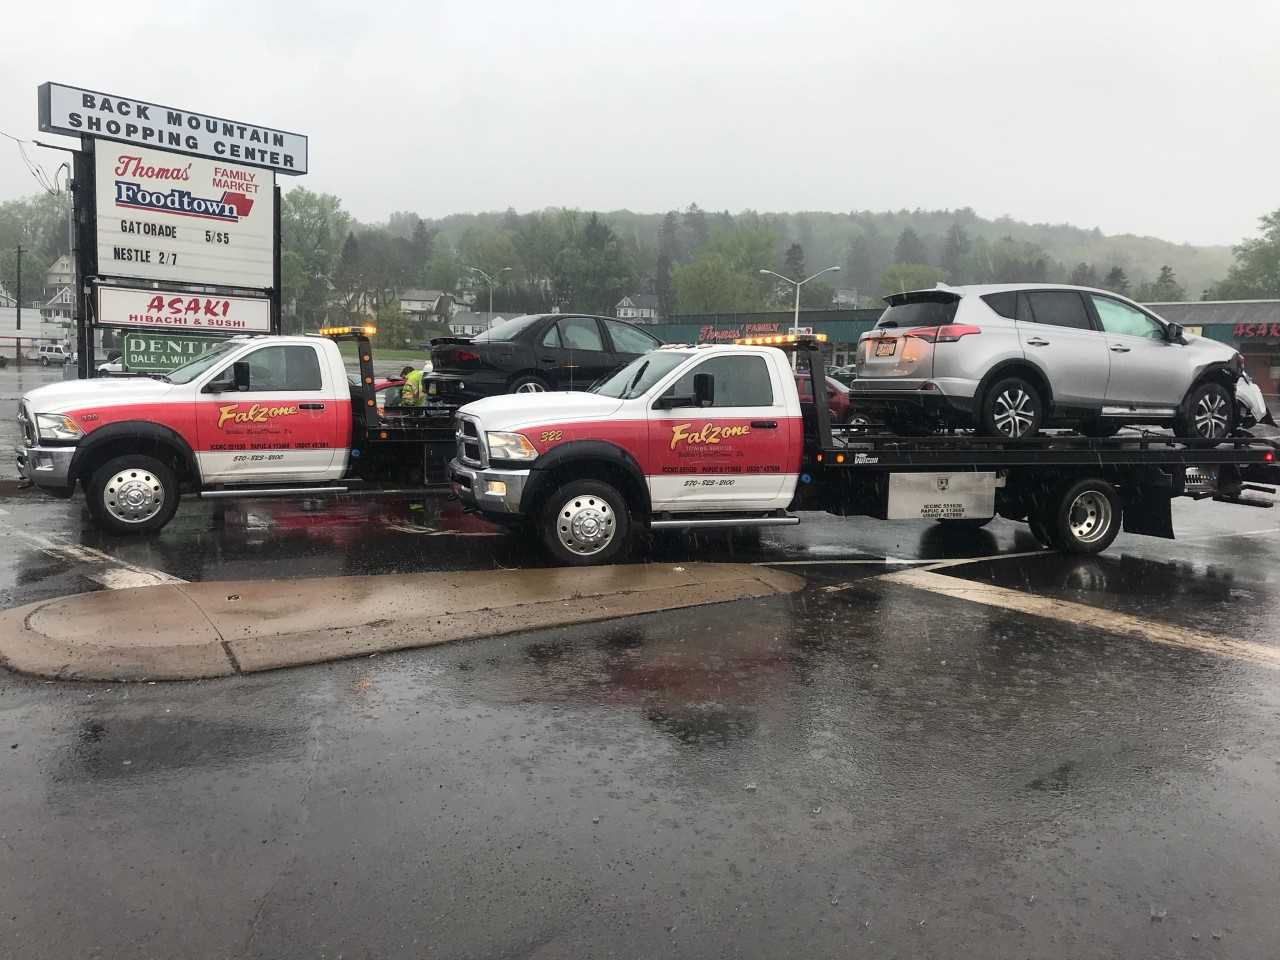 truck hauling car away from a wreck